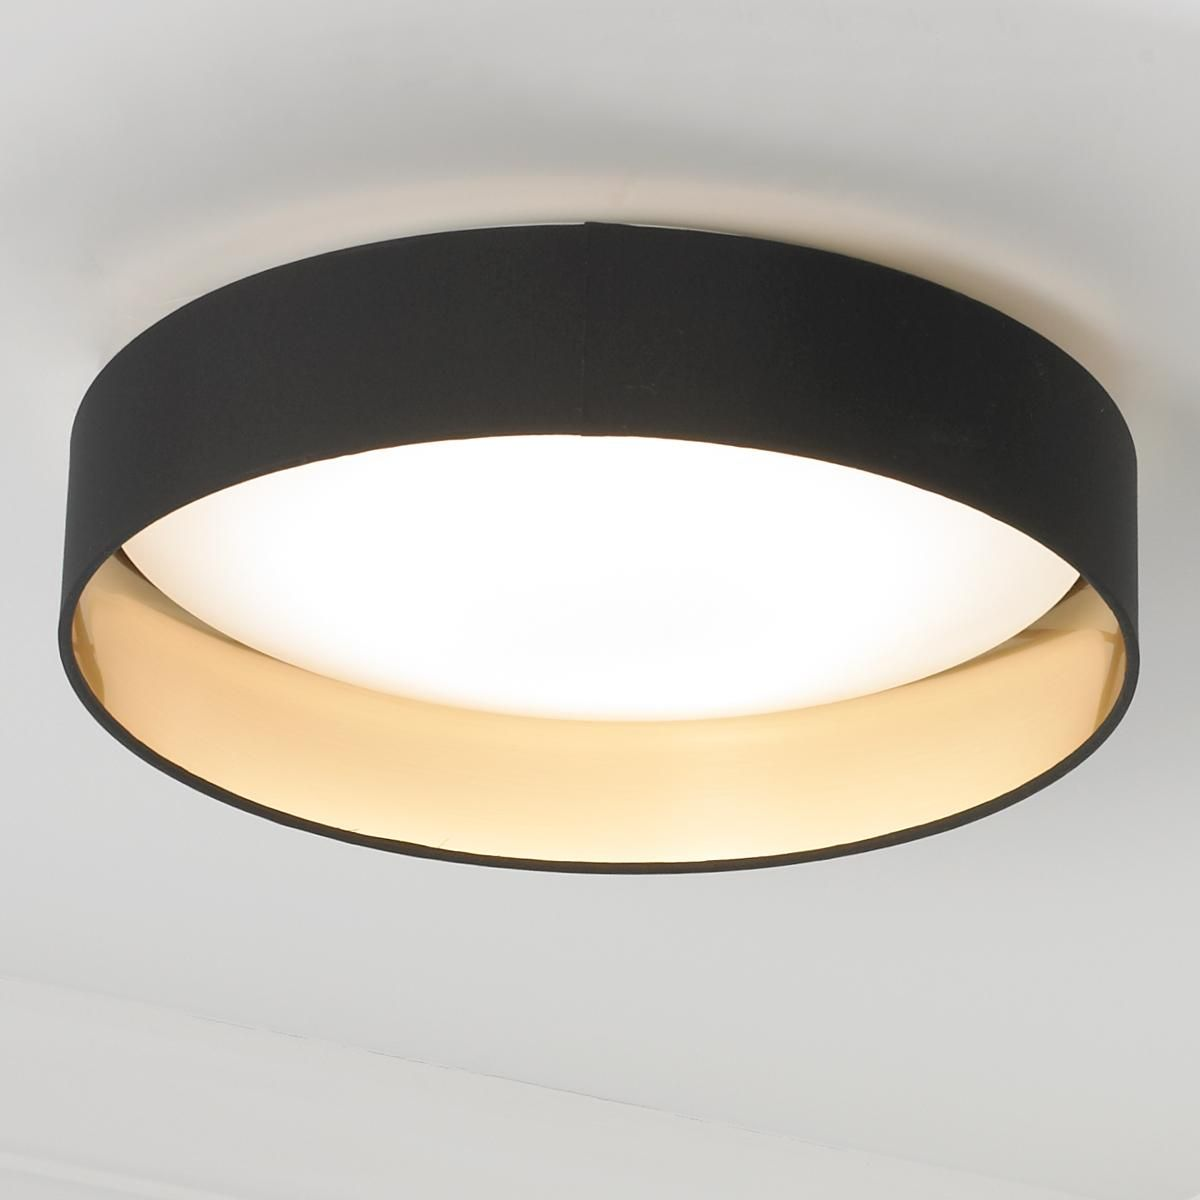 Modern ringed led ceiling light ceiling lights and for Contemporary bathroom ceiling lights